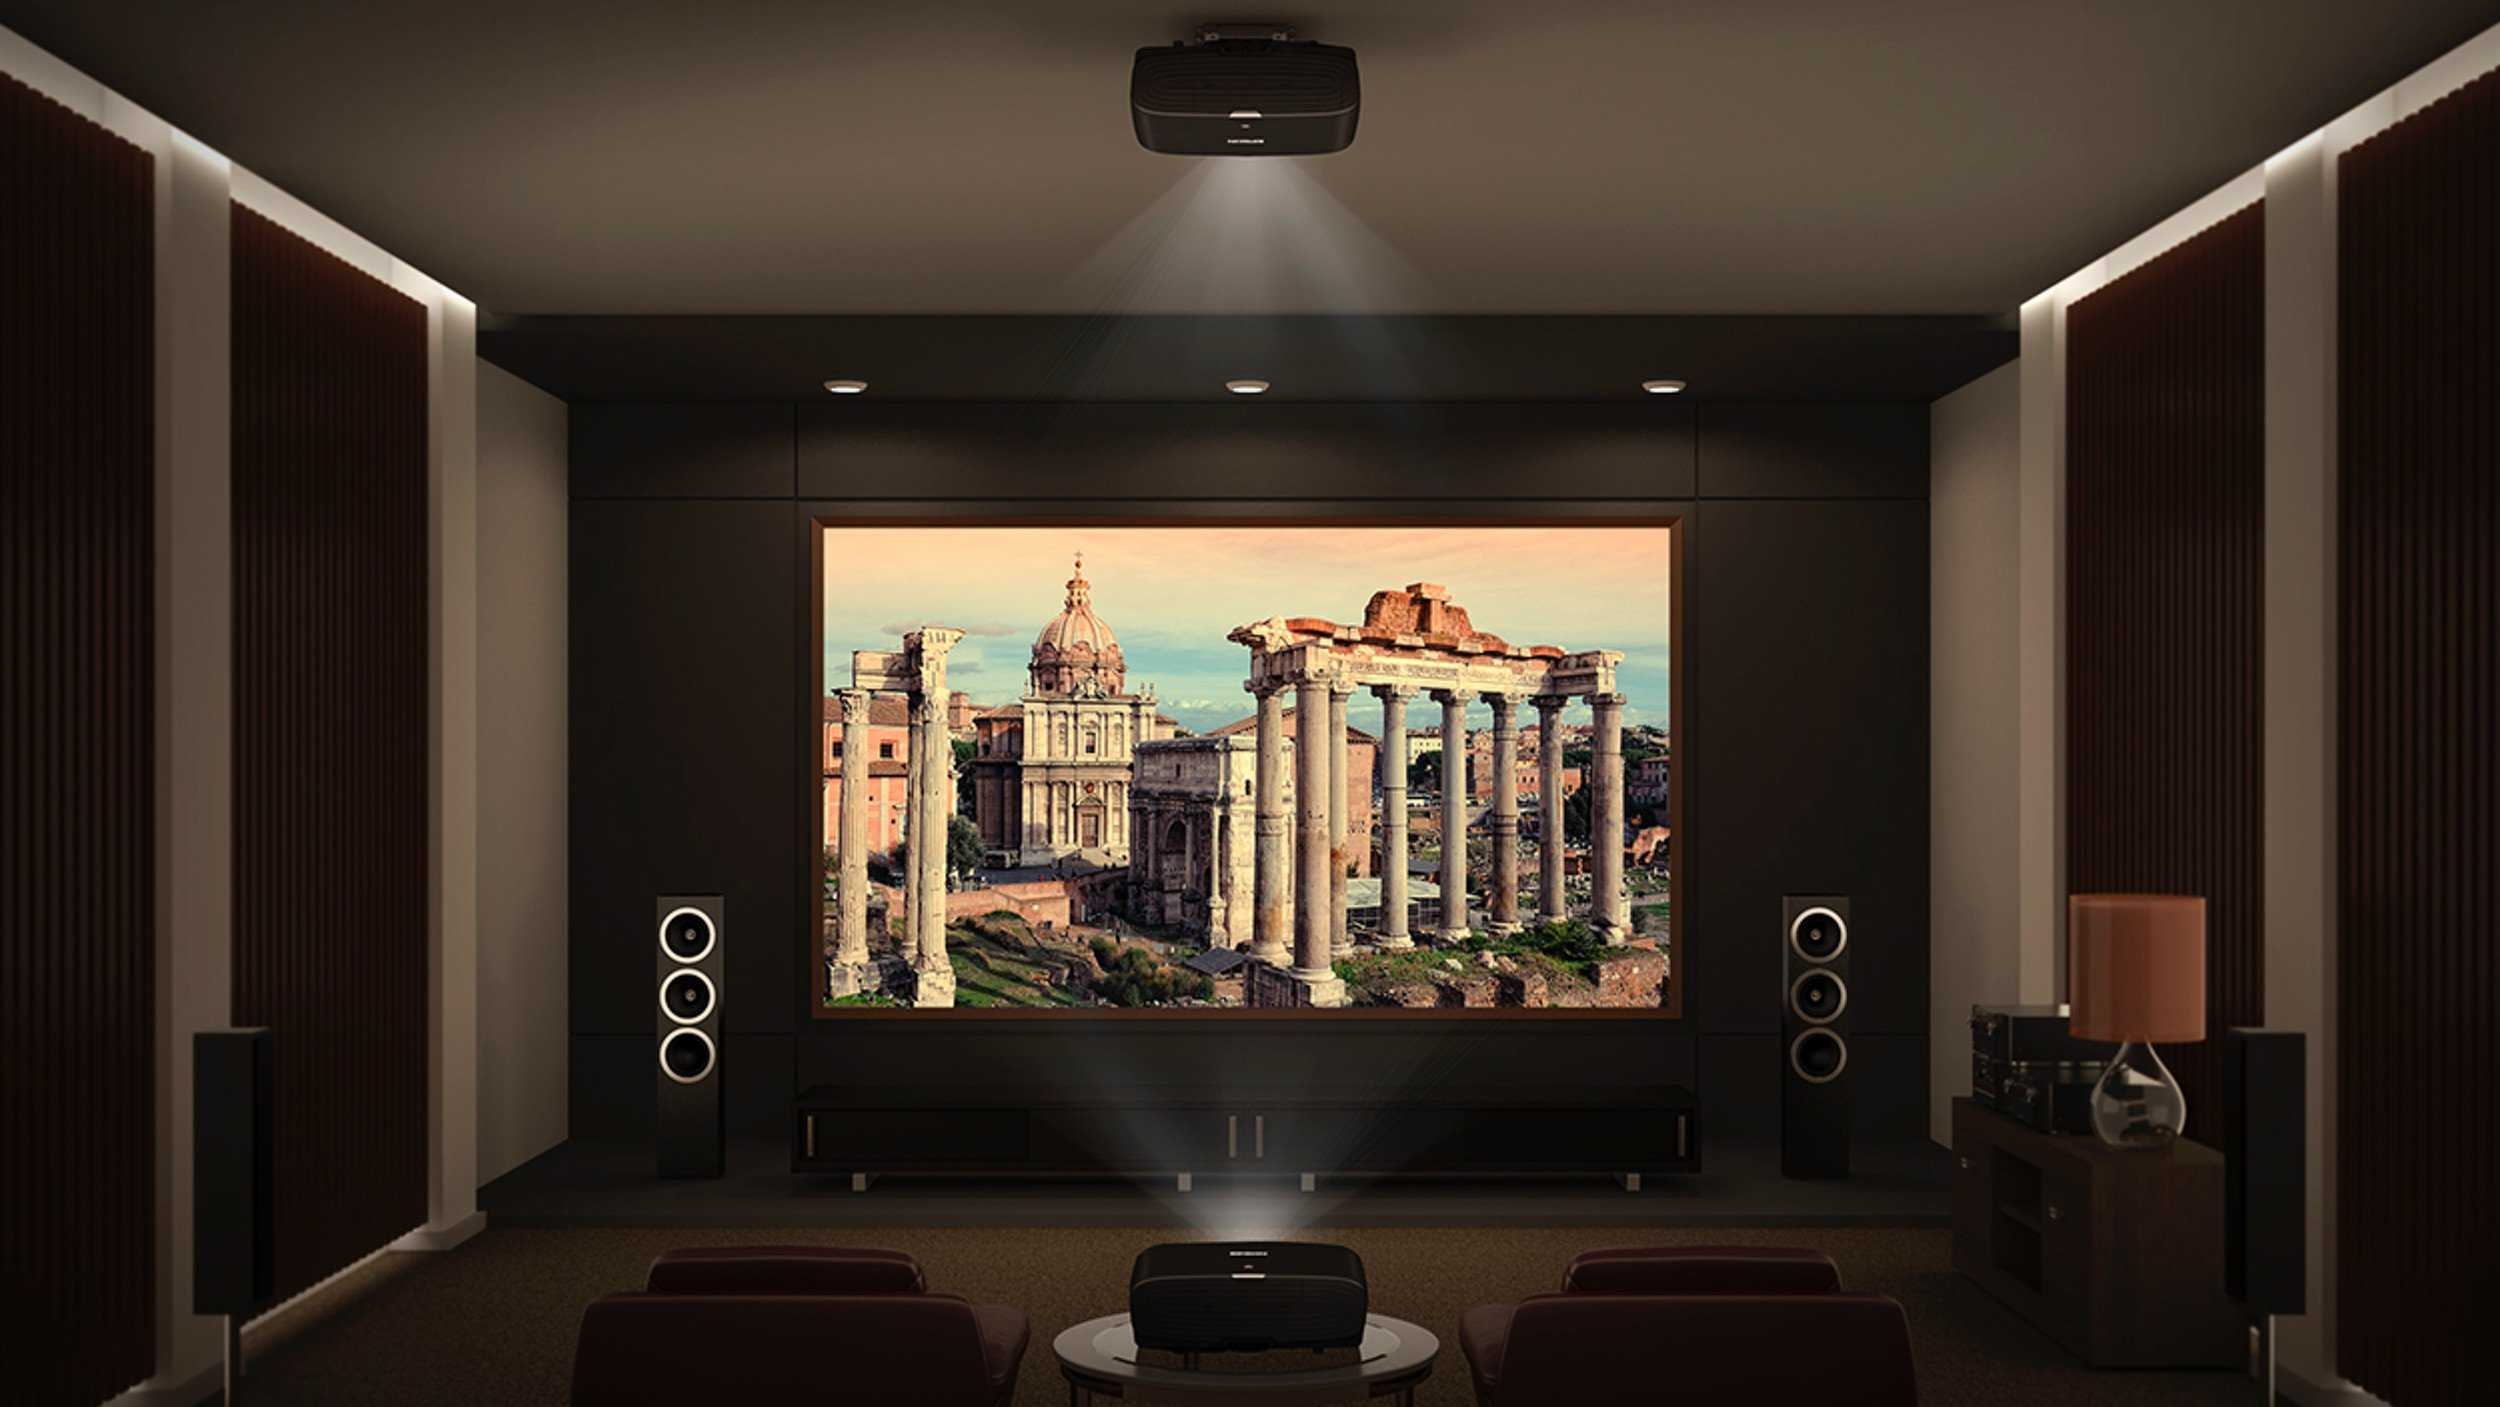 epson launches new range of fhd and 4k home cinema projectors. Black Bedroom Furniture Sets. Home Design Ideas